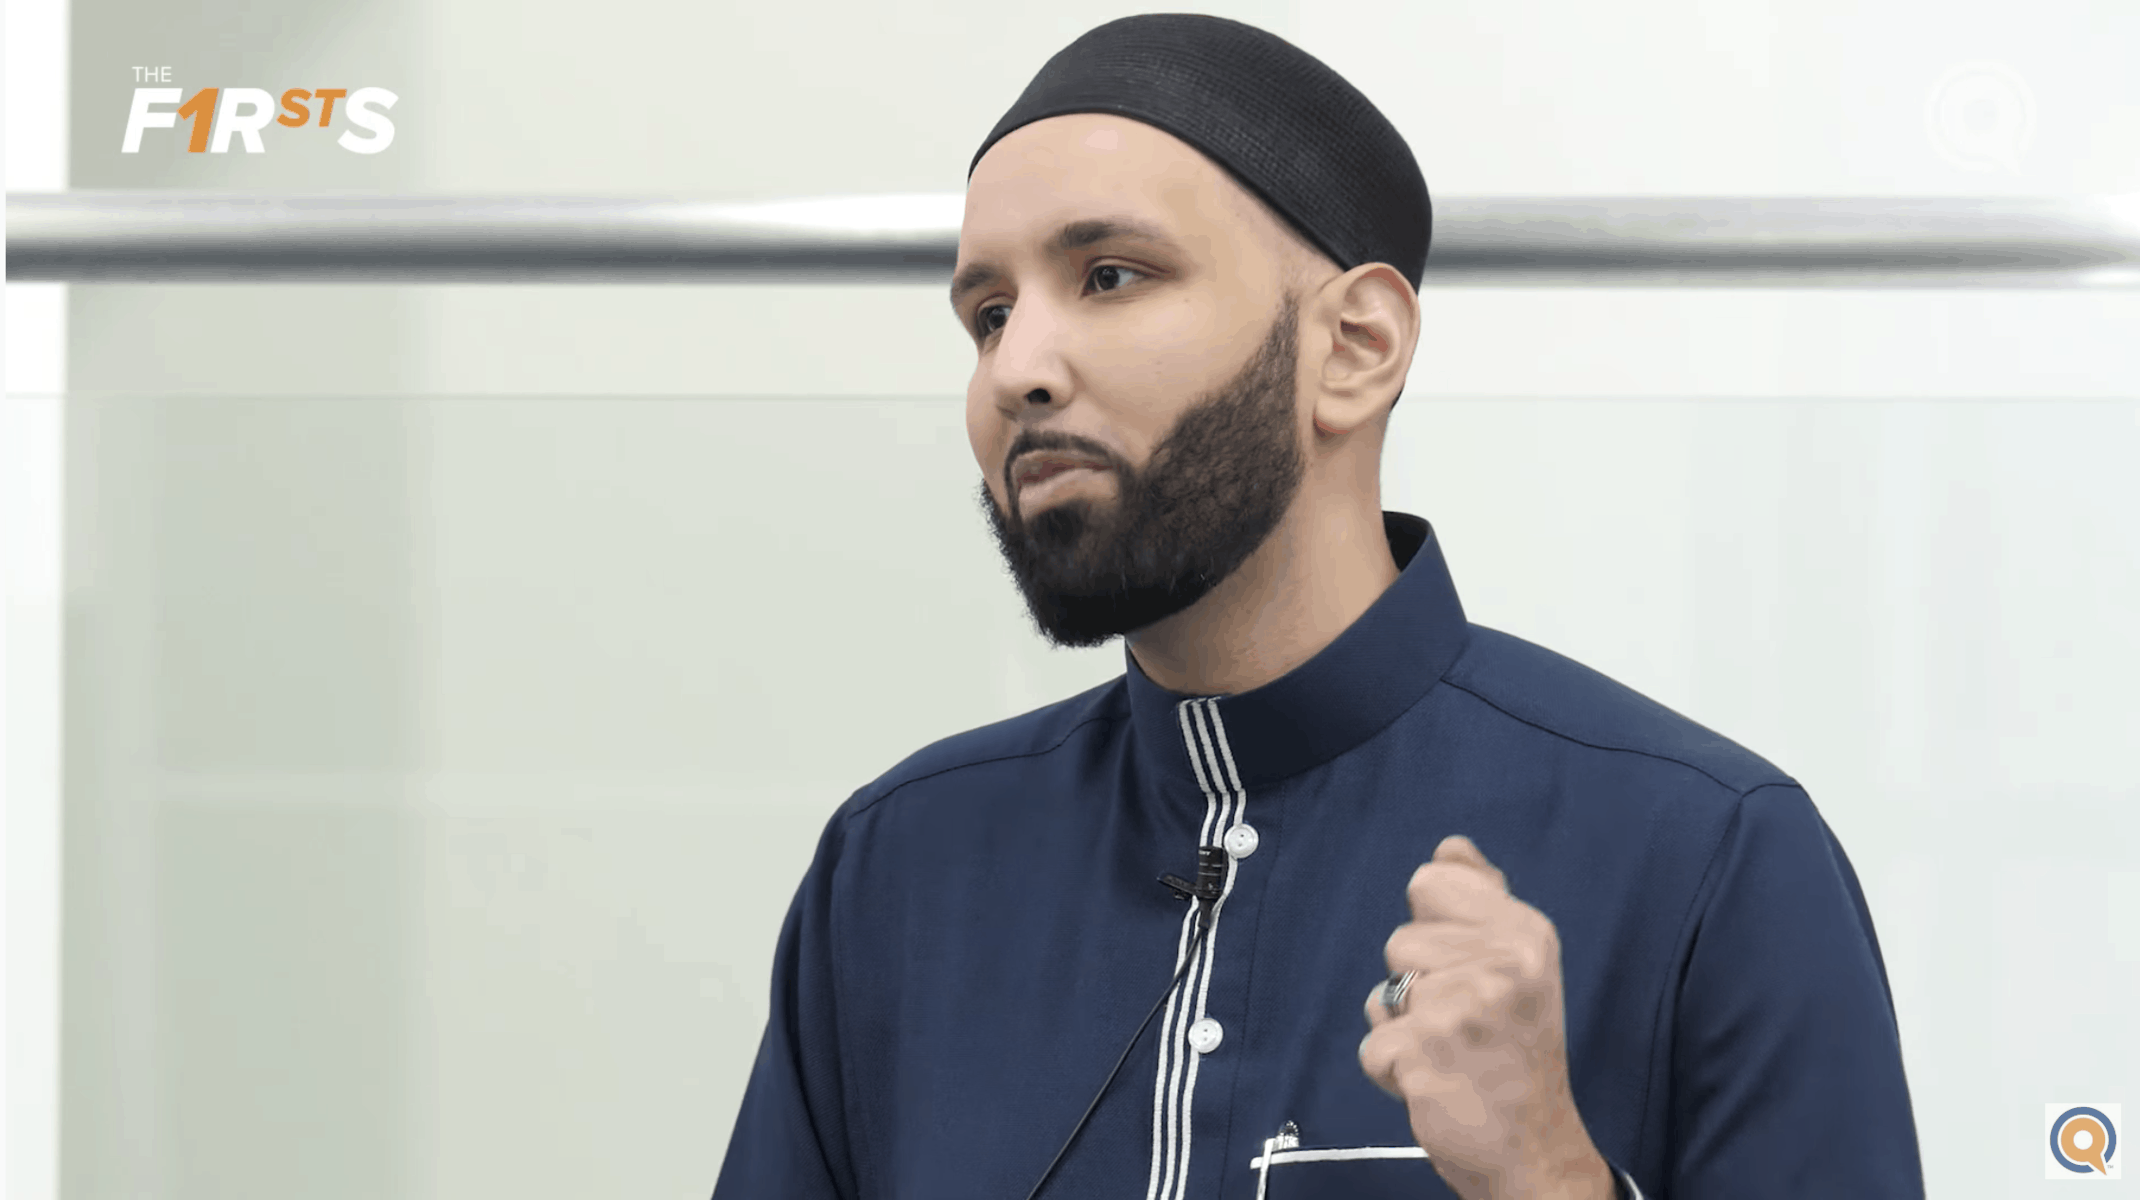 Omar Suleiman – The Firsts (Episode 9): Abu Bakr: Second to None in the Pursuit of God